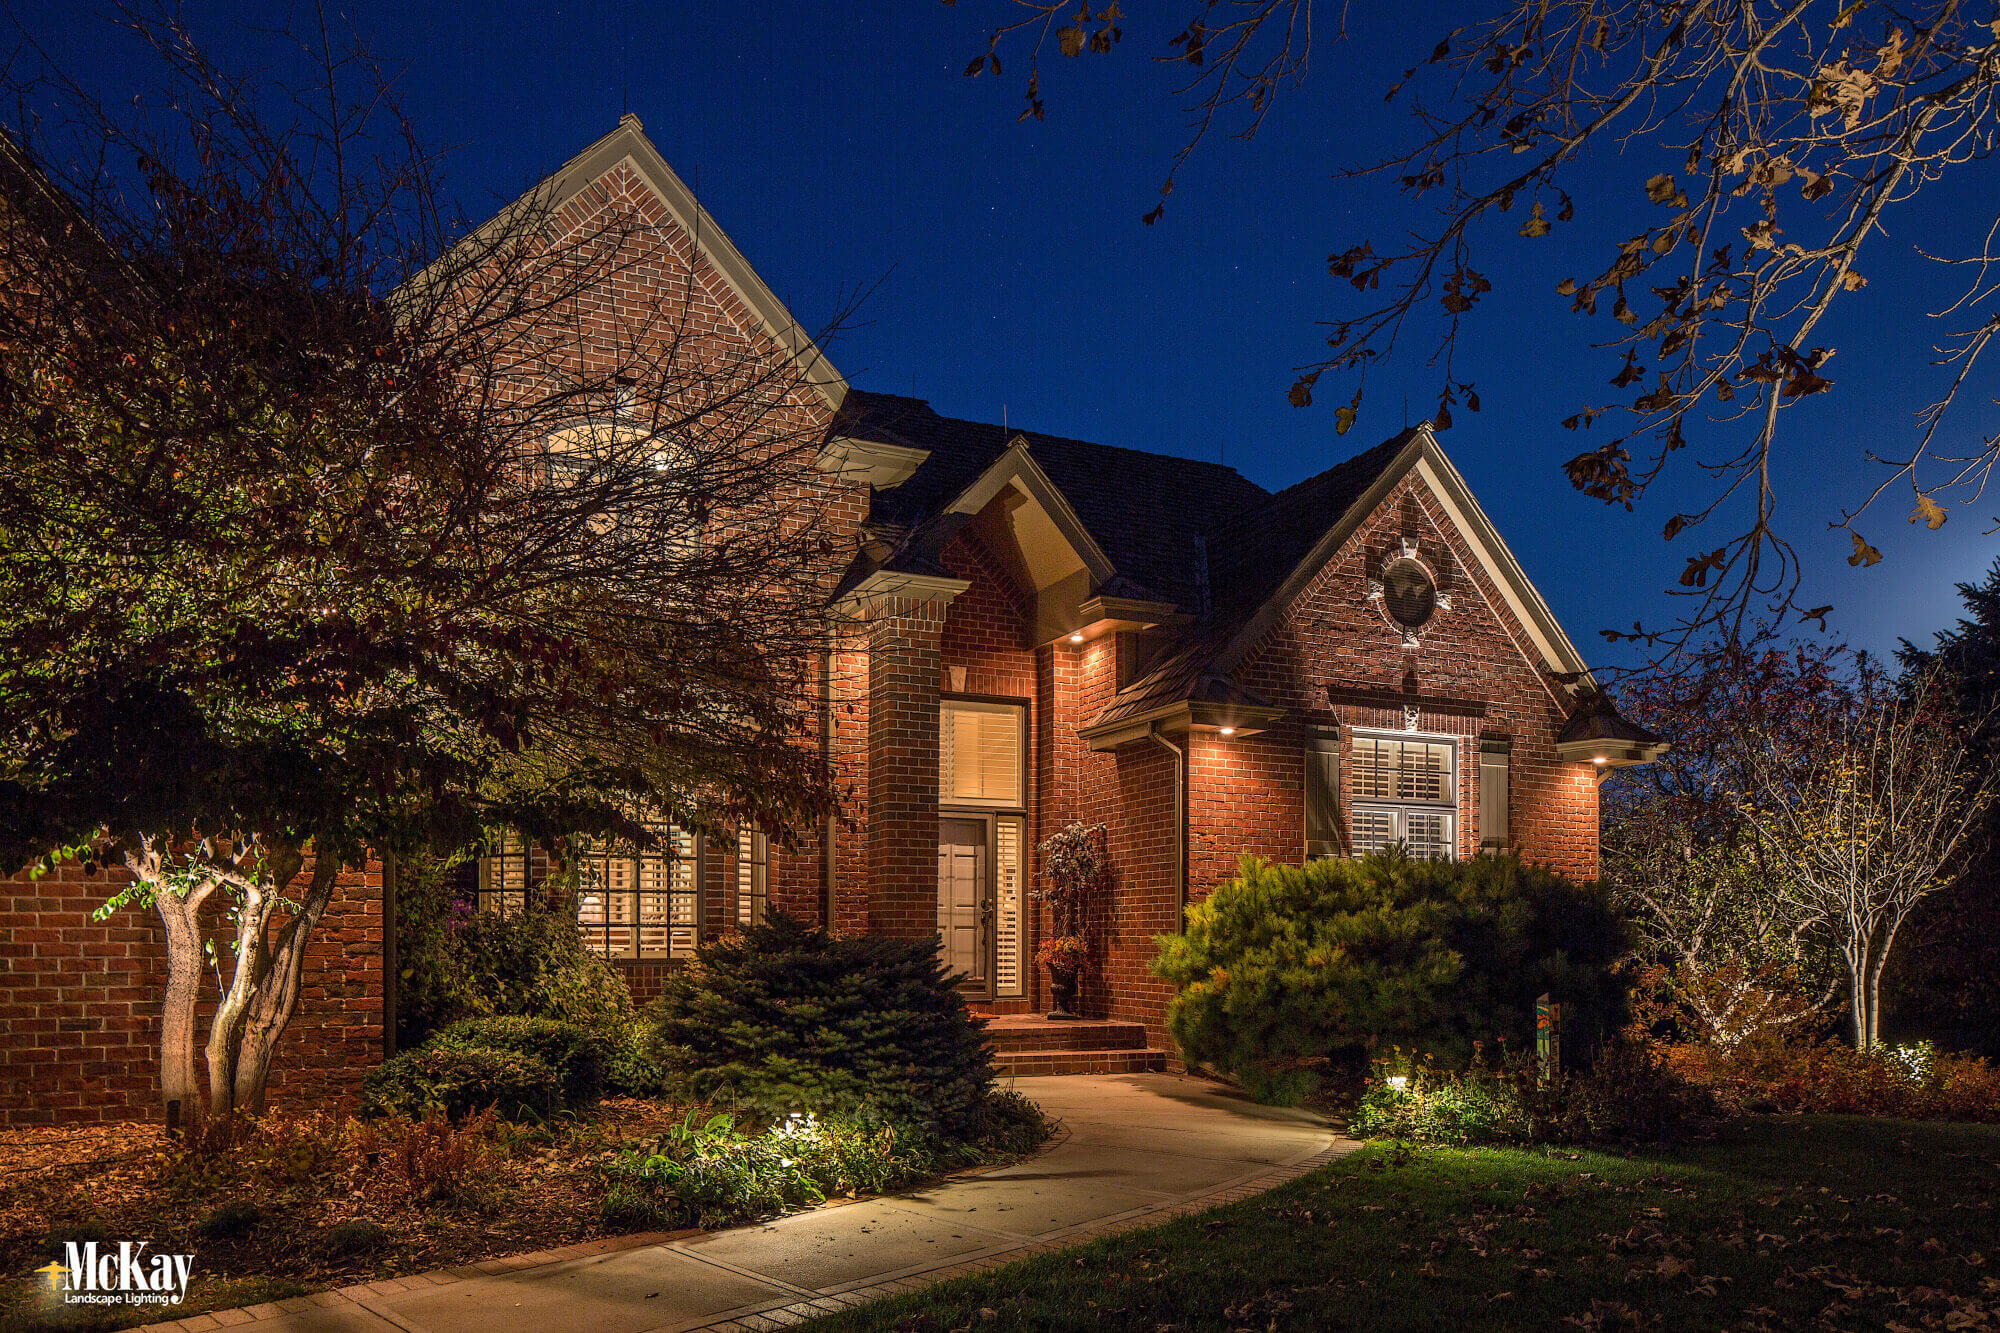 Landscape Lighting LED Upgrade Omaha Nebraska McKay Landscape Lighting T 05